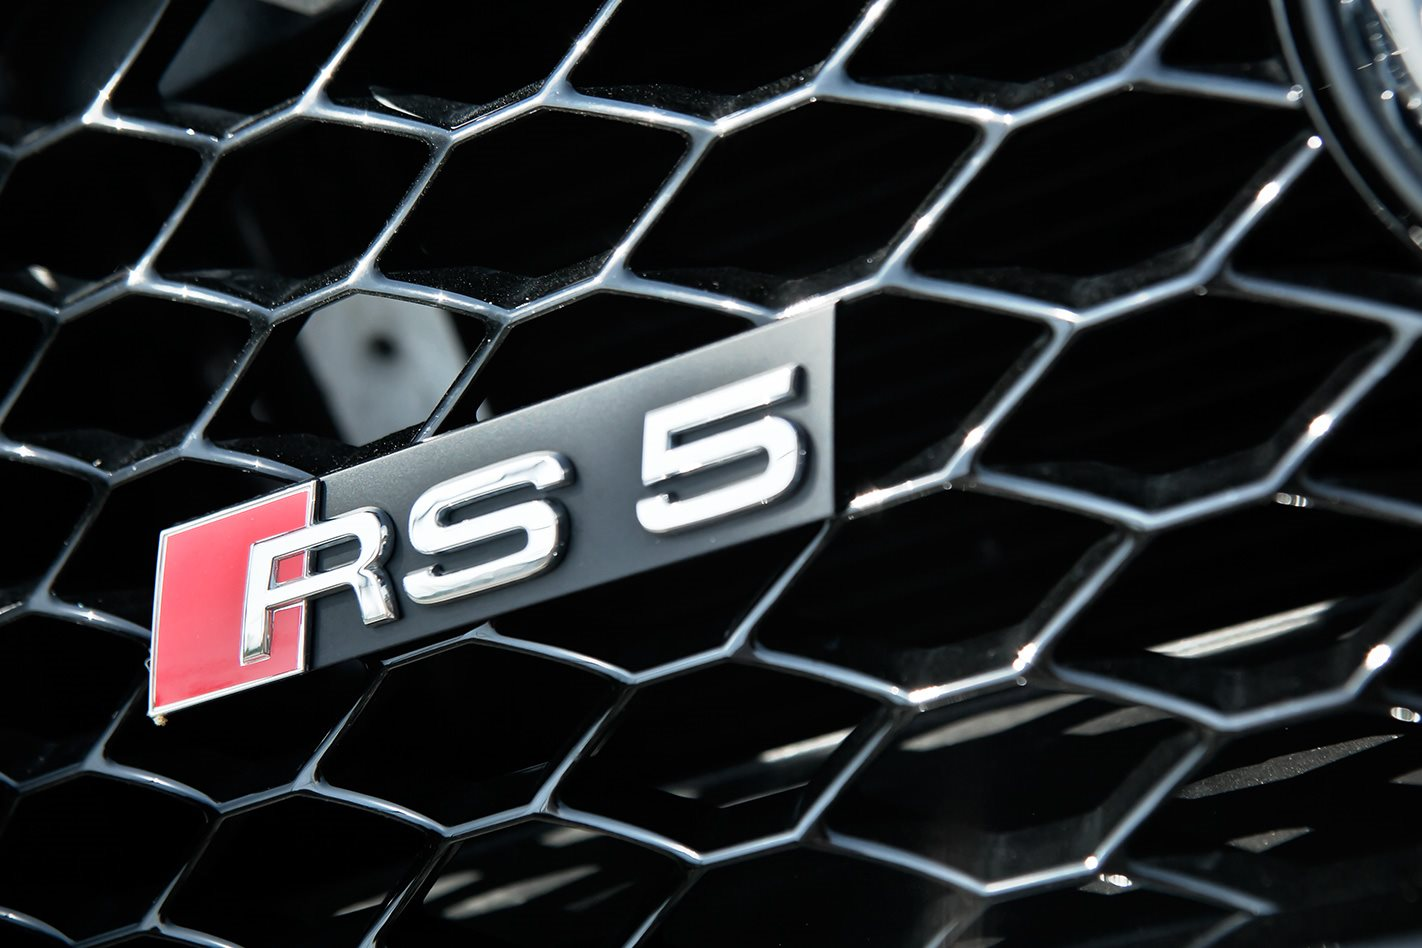 2012-Audi-RS5-badge.jpg